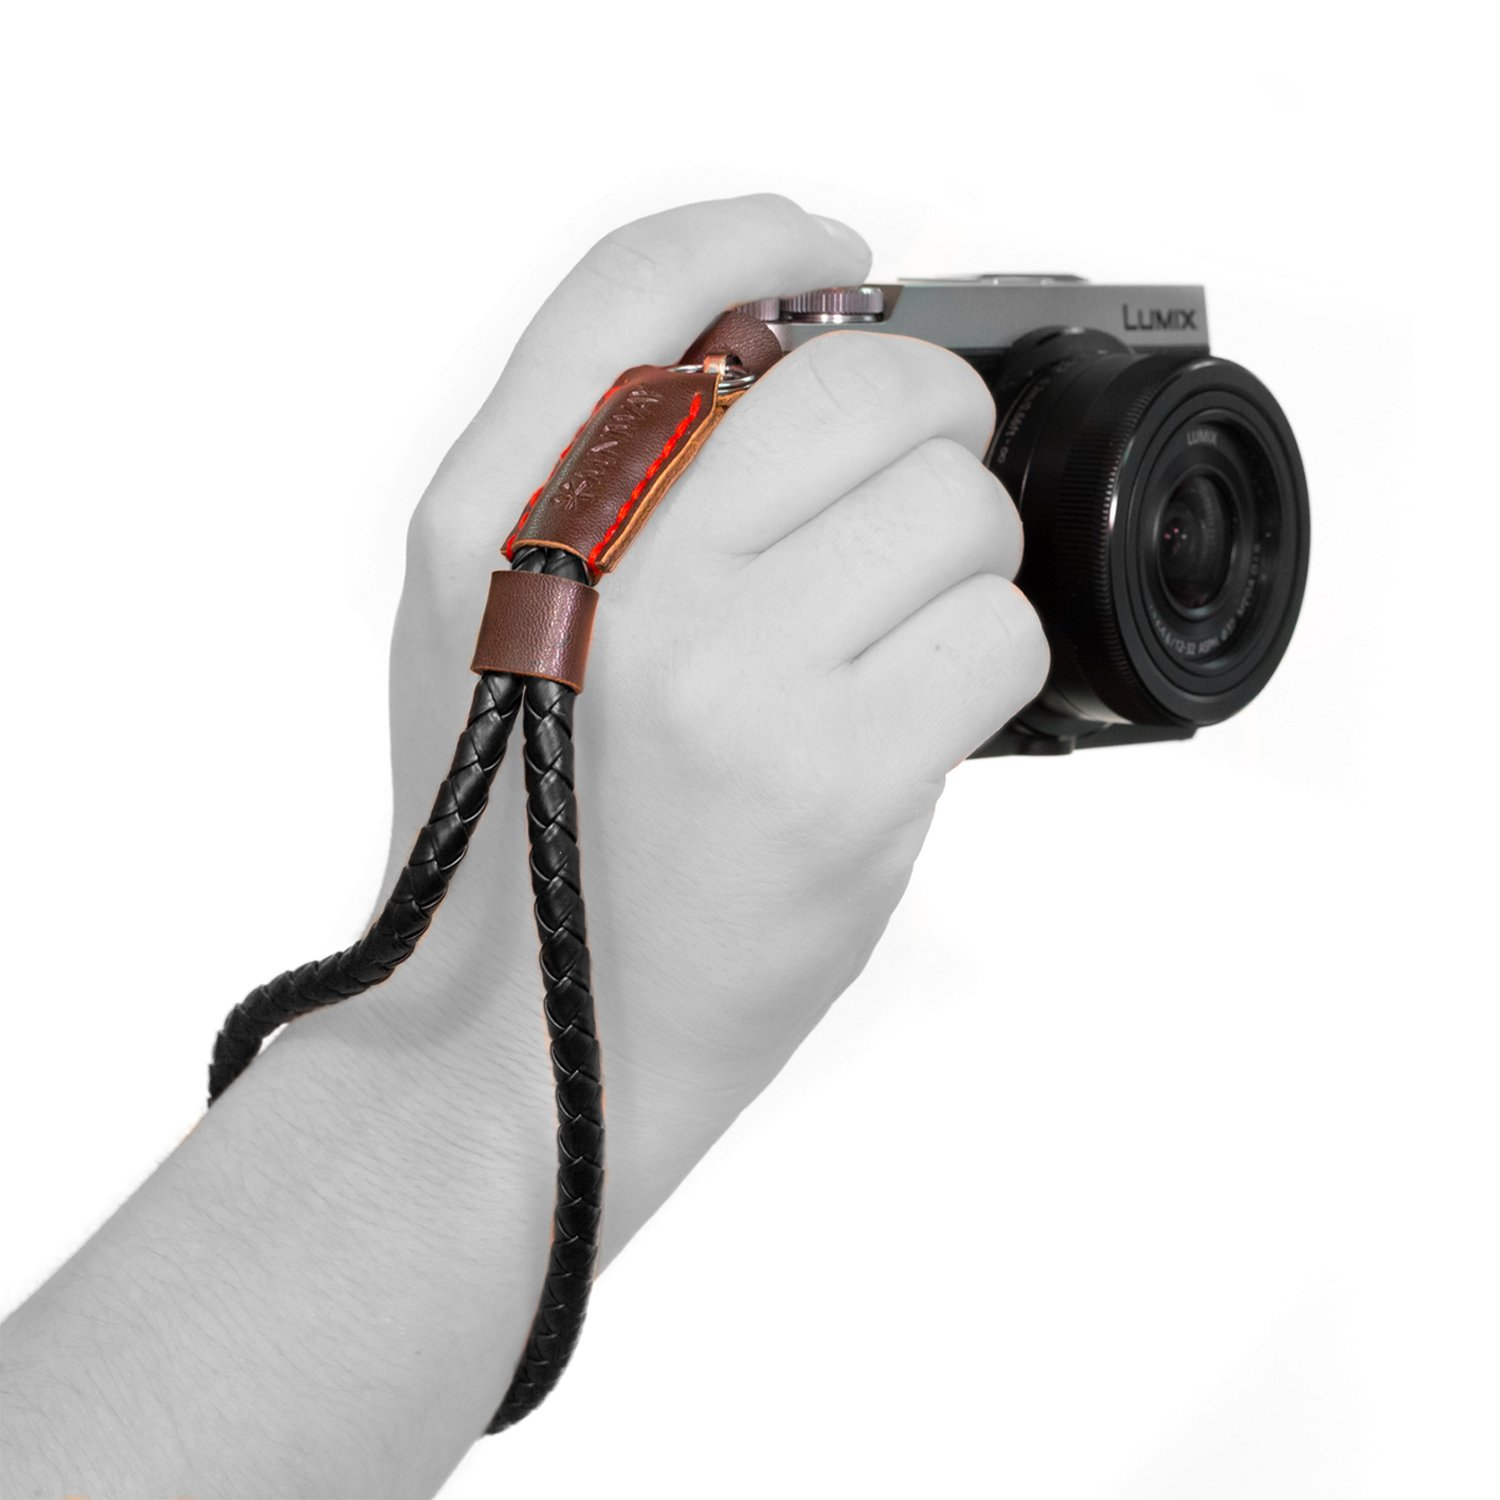 MegaGear MG934 Leather Woven Wrist Strap Comfort Padding, Enhanced Hand Grip Stability and Security for All Cameras (SLR/DSLR) One Size Fits All, Dark Brown